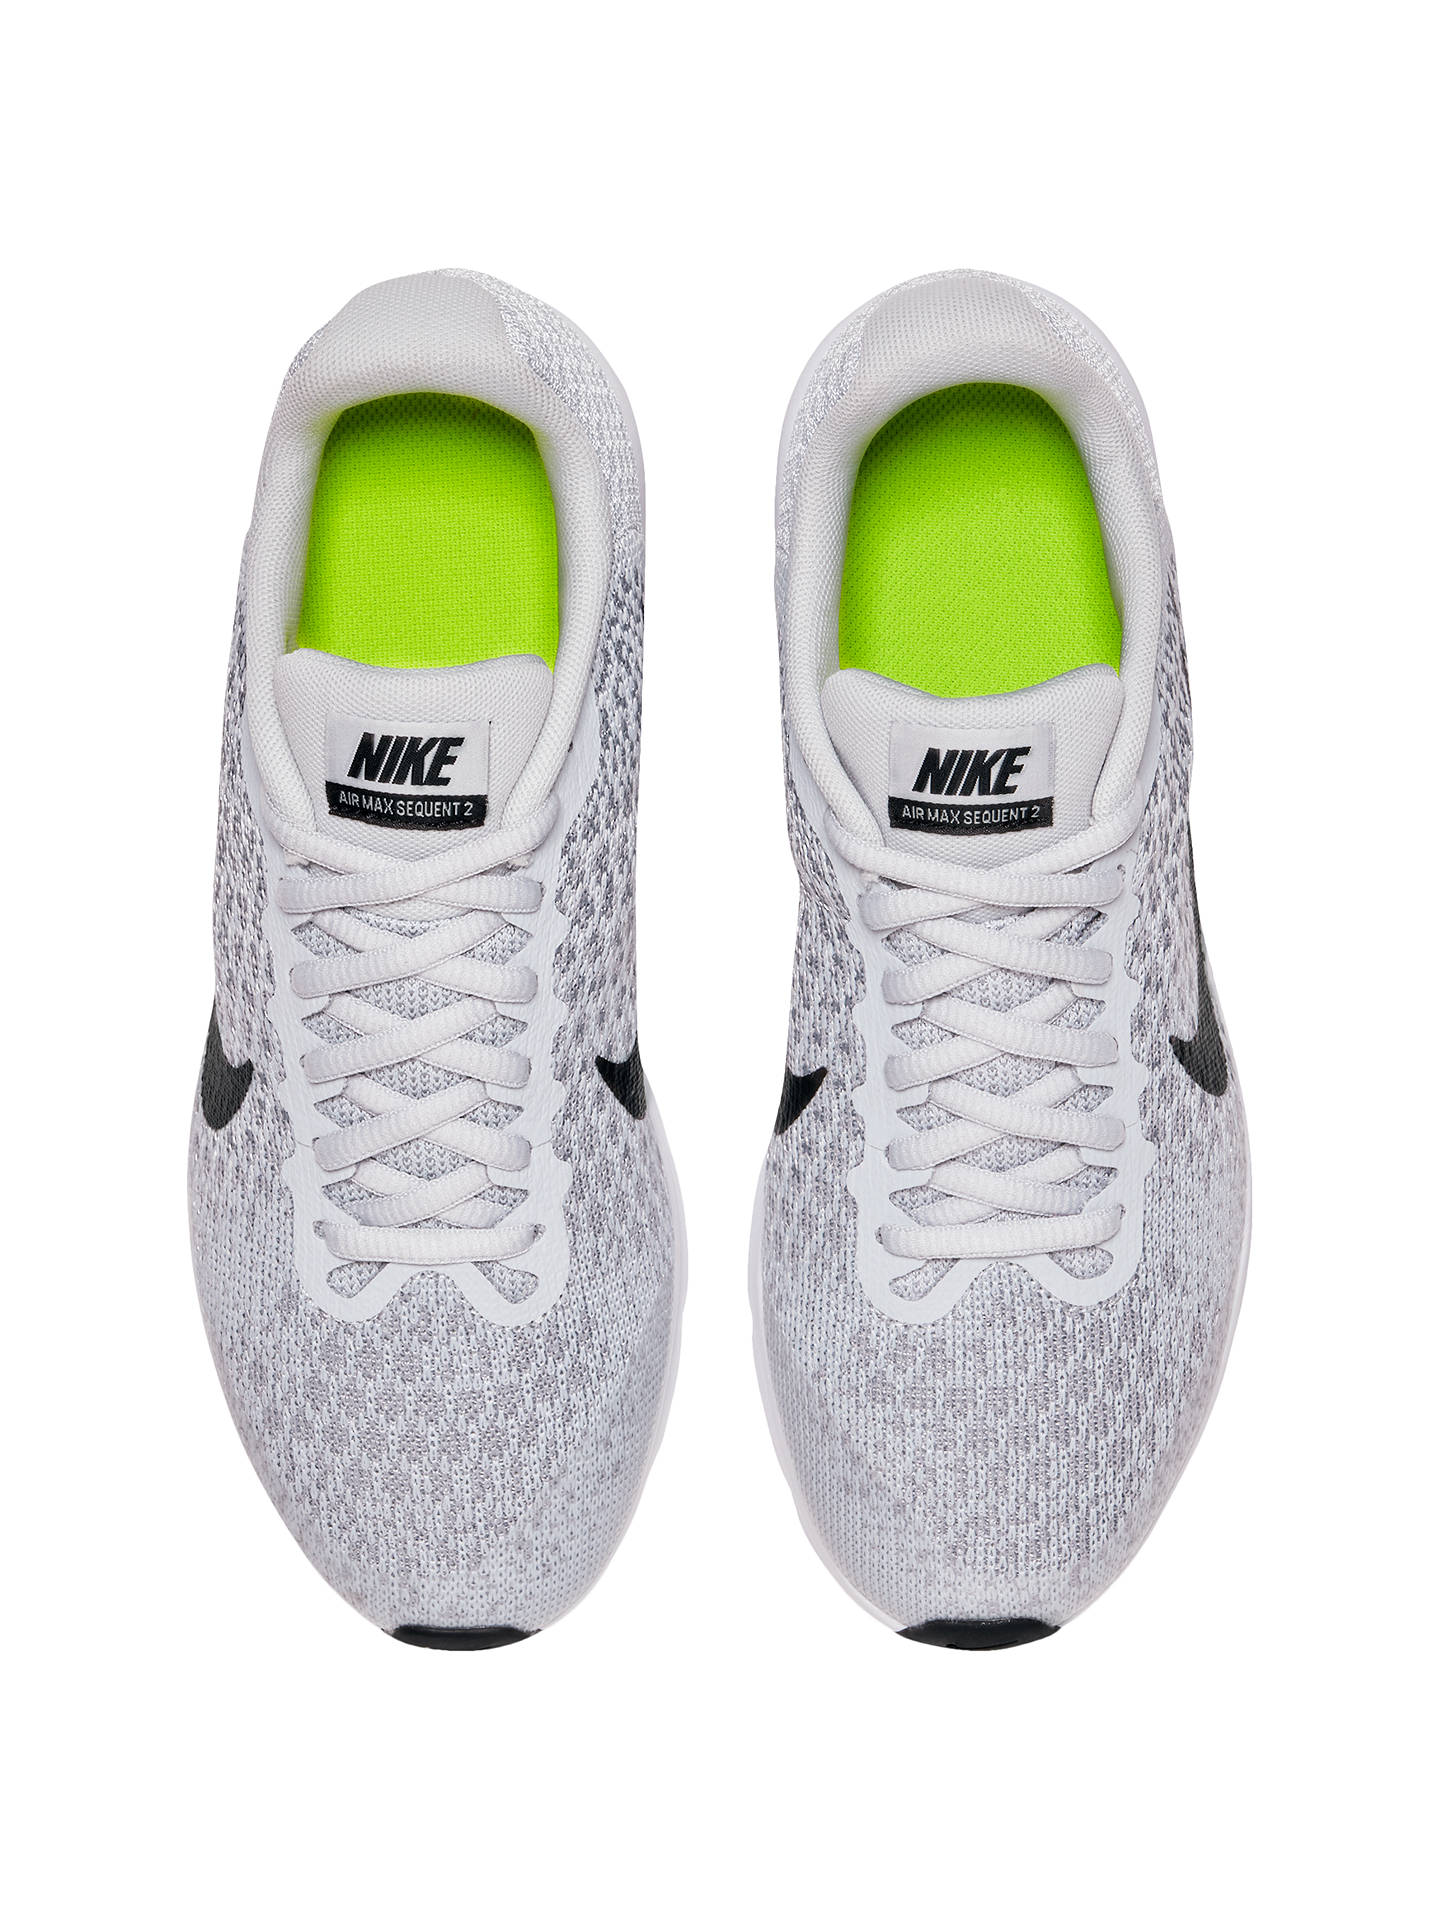 39e7fc0b0f91d ... Buy Nike Children s Air Max Sequent 2 Trainers